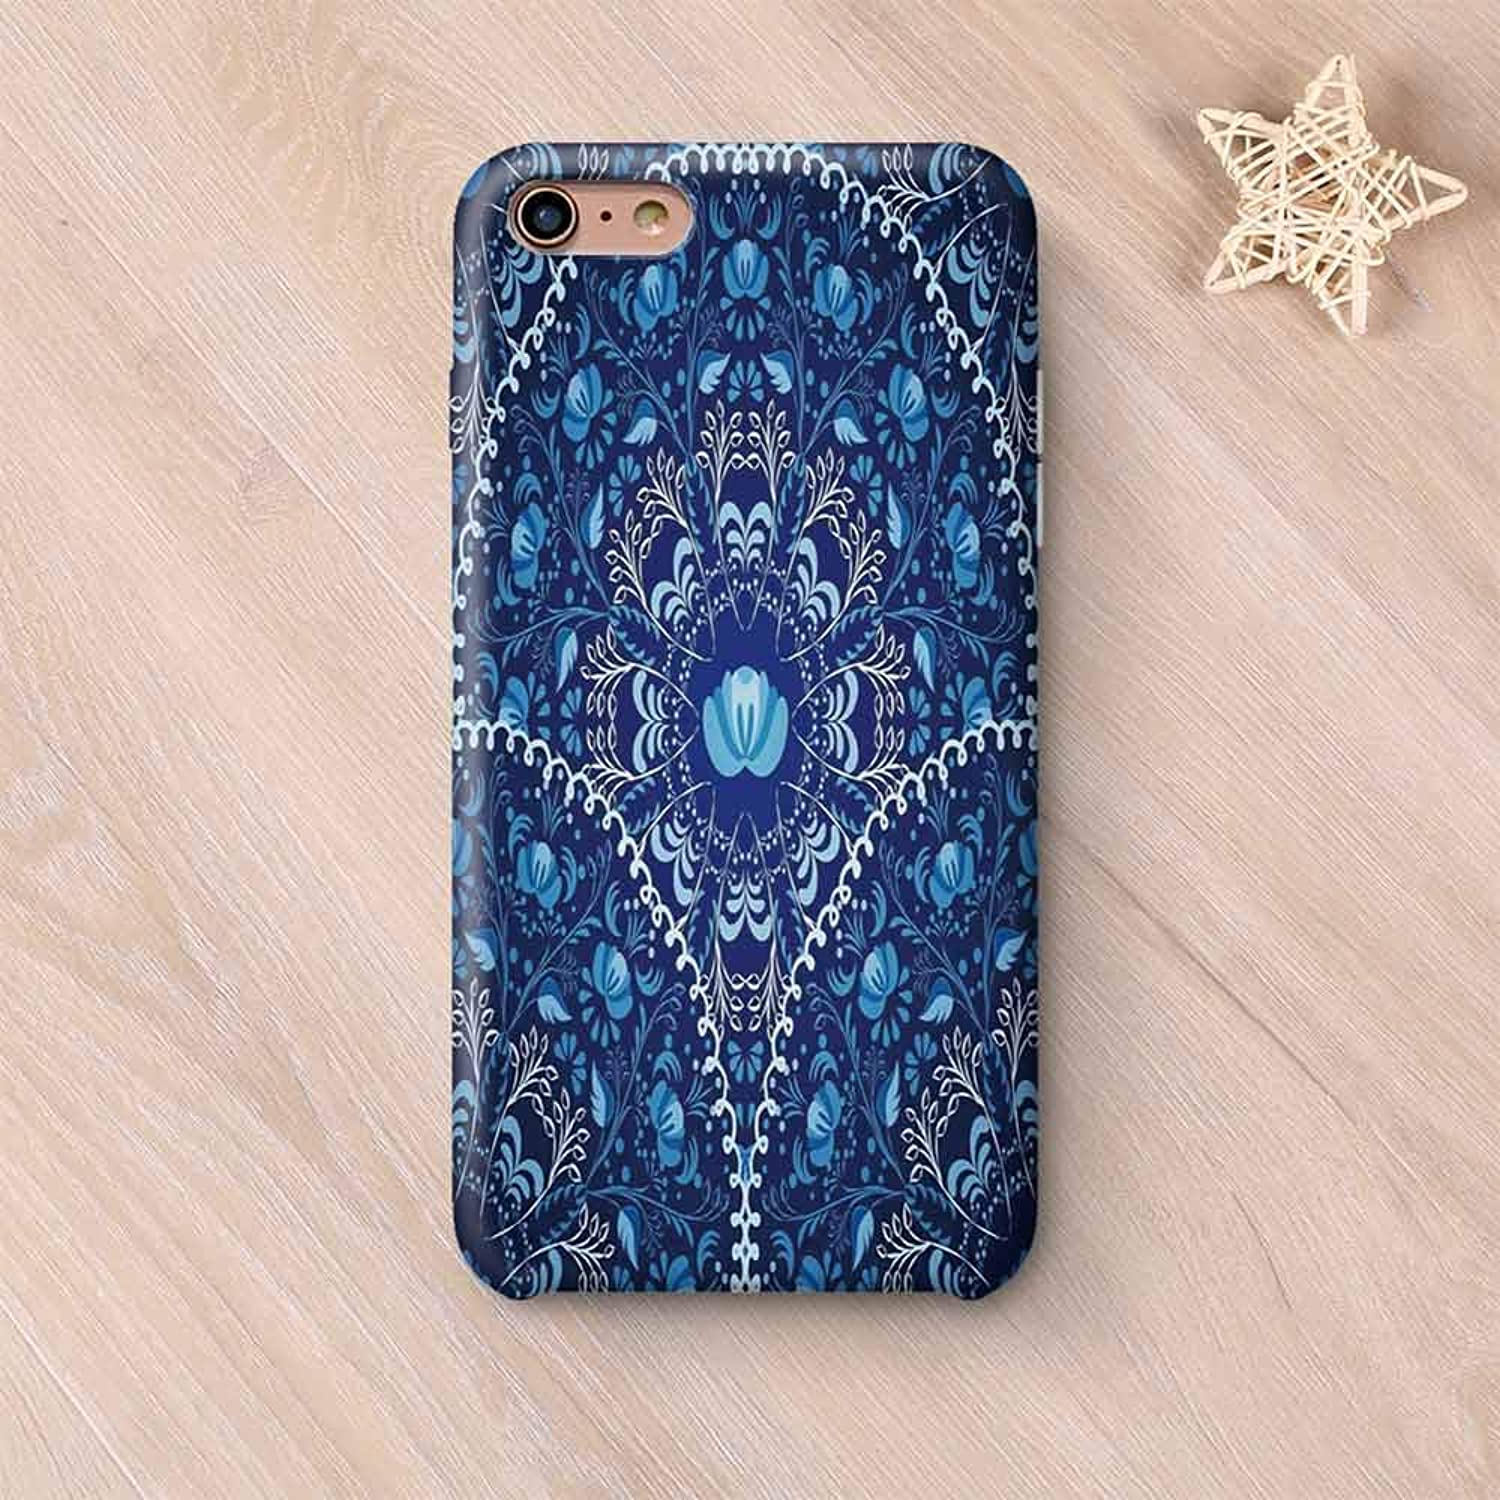 Navy Blue Decor No Odor Compatible with iPhone Case,Circular and Floral Alike Oriental Patterned Design Artwork Compatible with iPhone 7/8 Plus,iPhone 6 Plus / 6s Plus